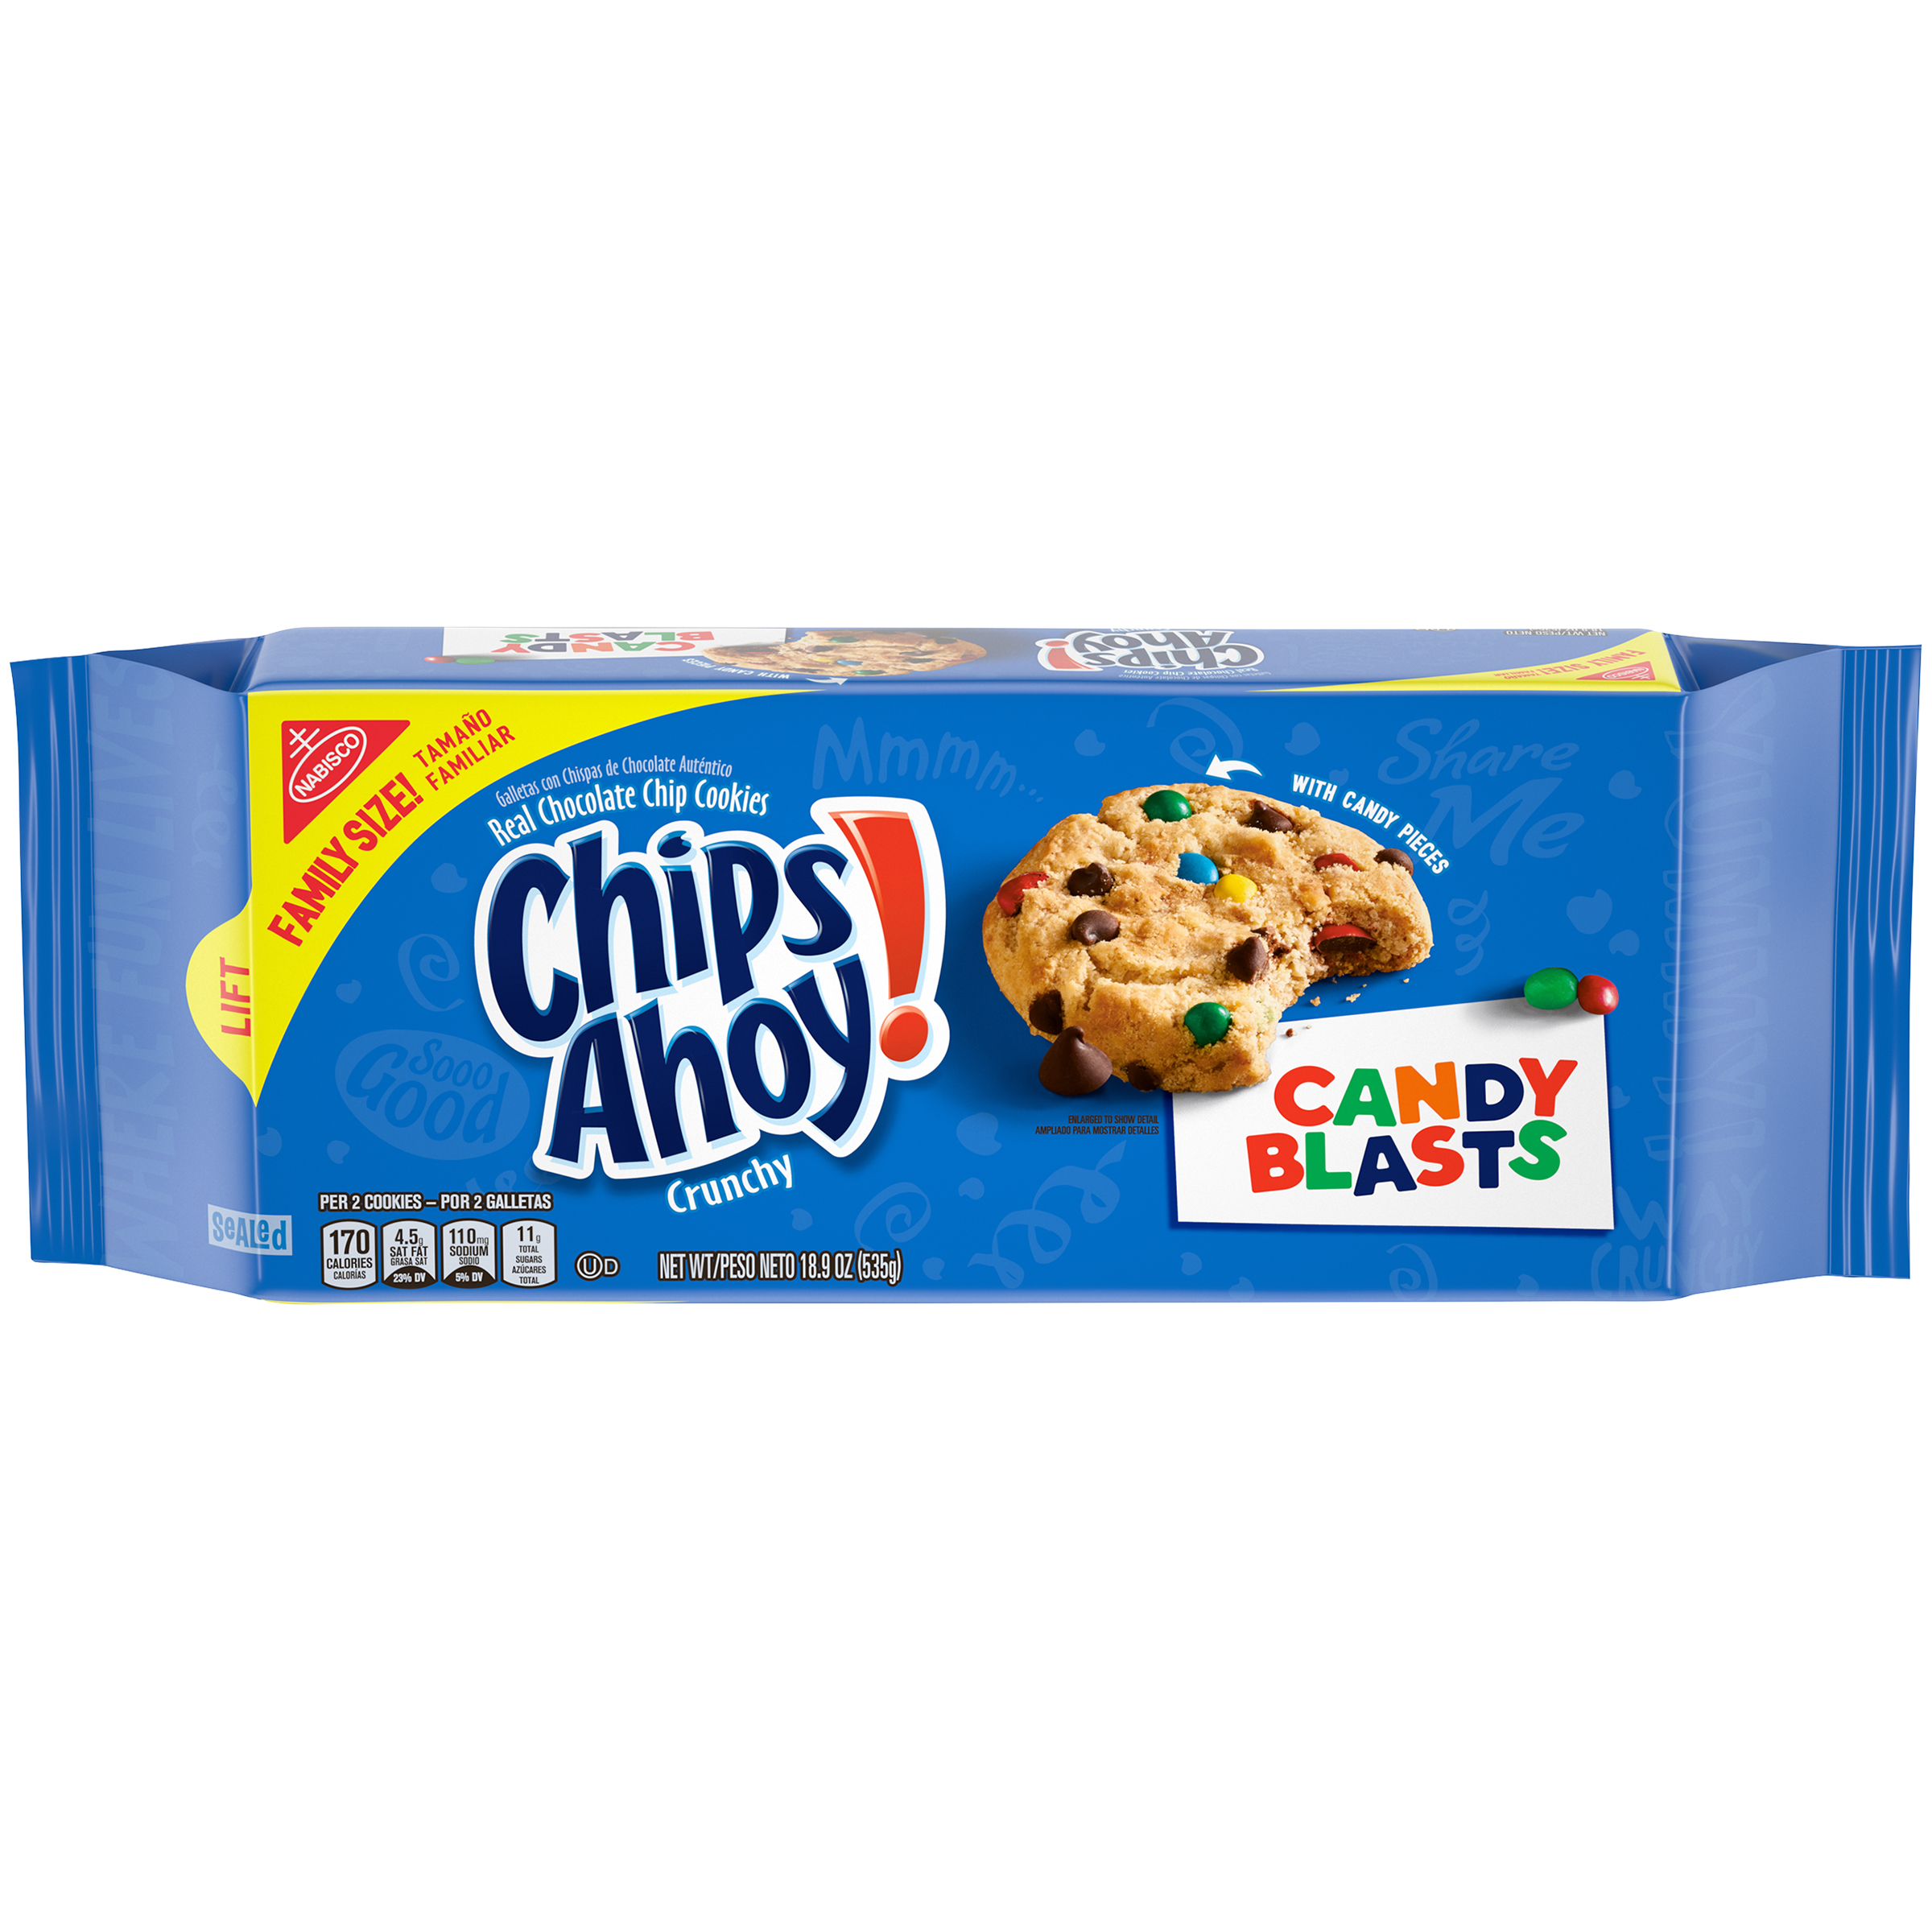 CHIPS AHOY! Candy Cookies 18.9 oz